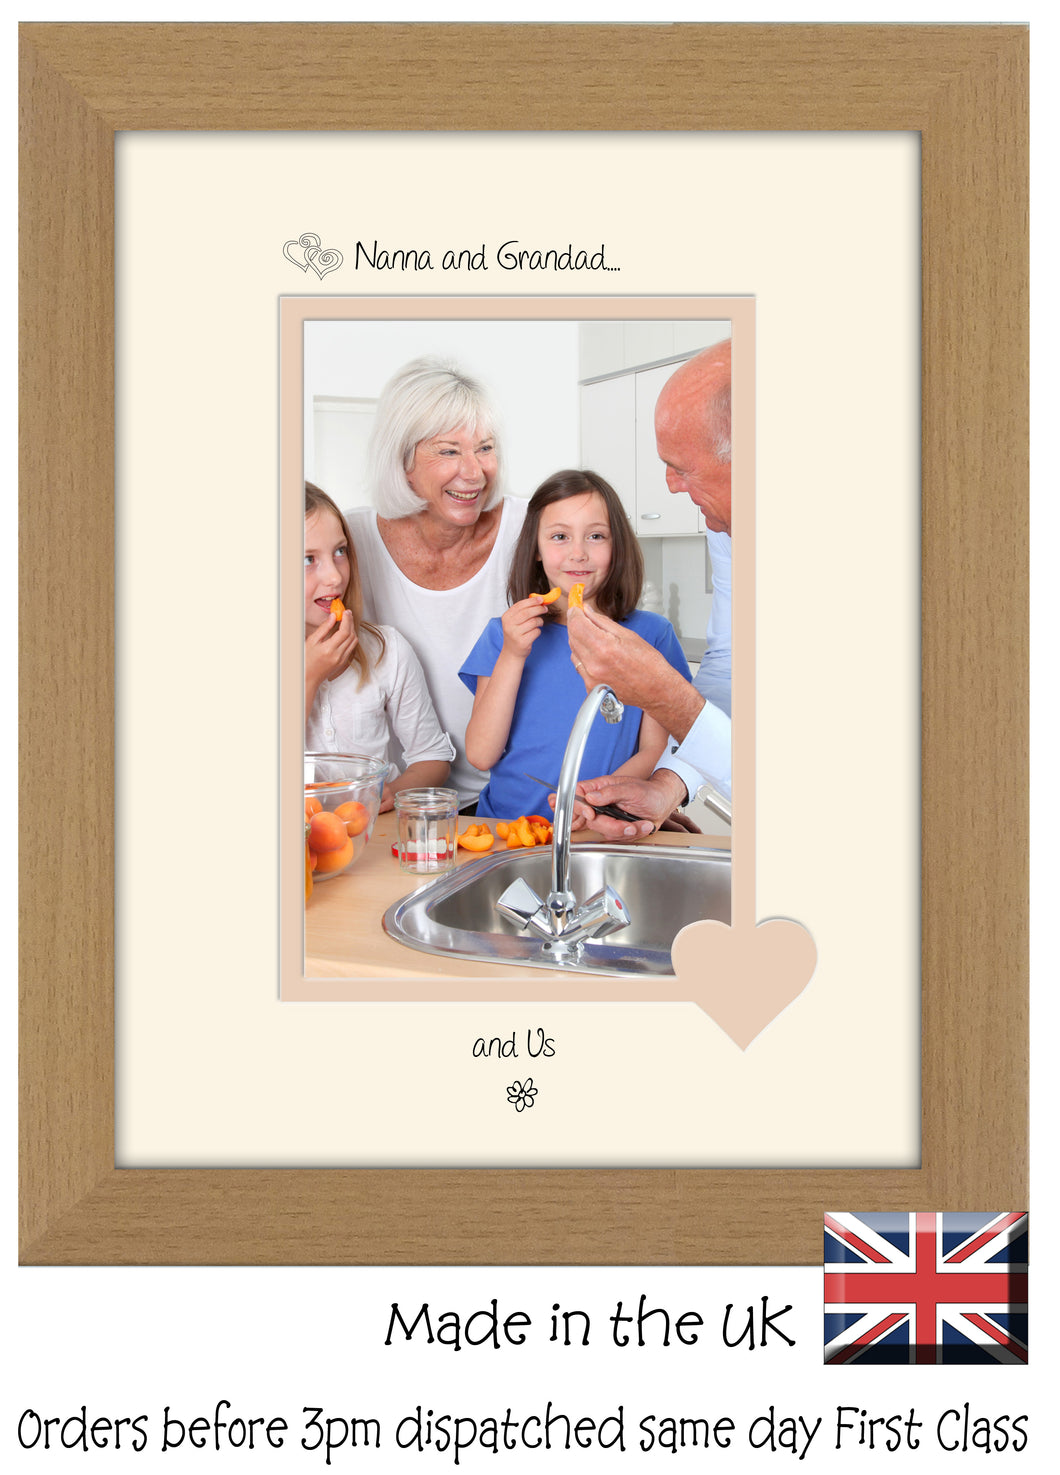 Nanna & Grandad Photo Frame - Nanna and Grandad… ...and us! Portrait photo frame 6